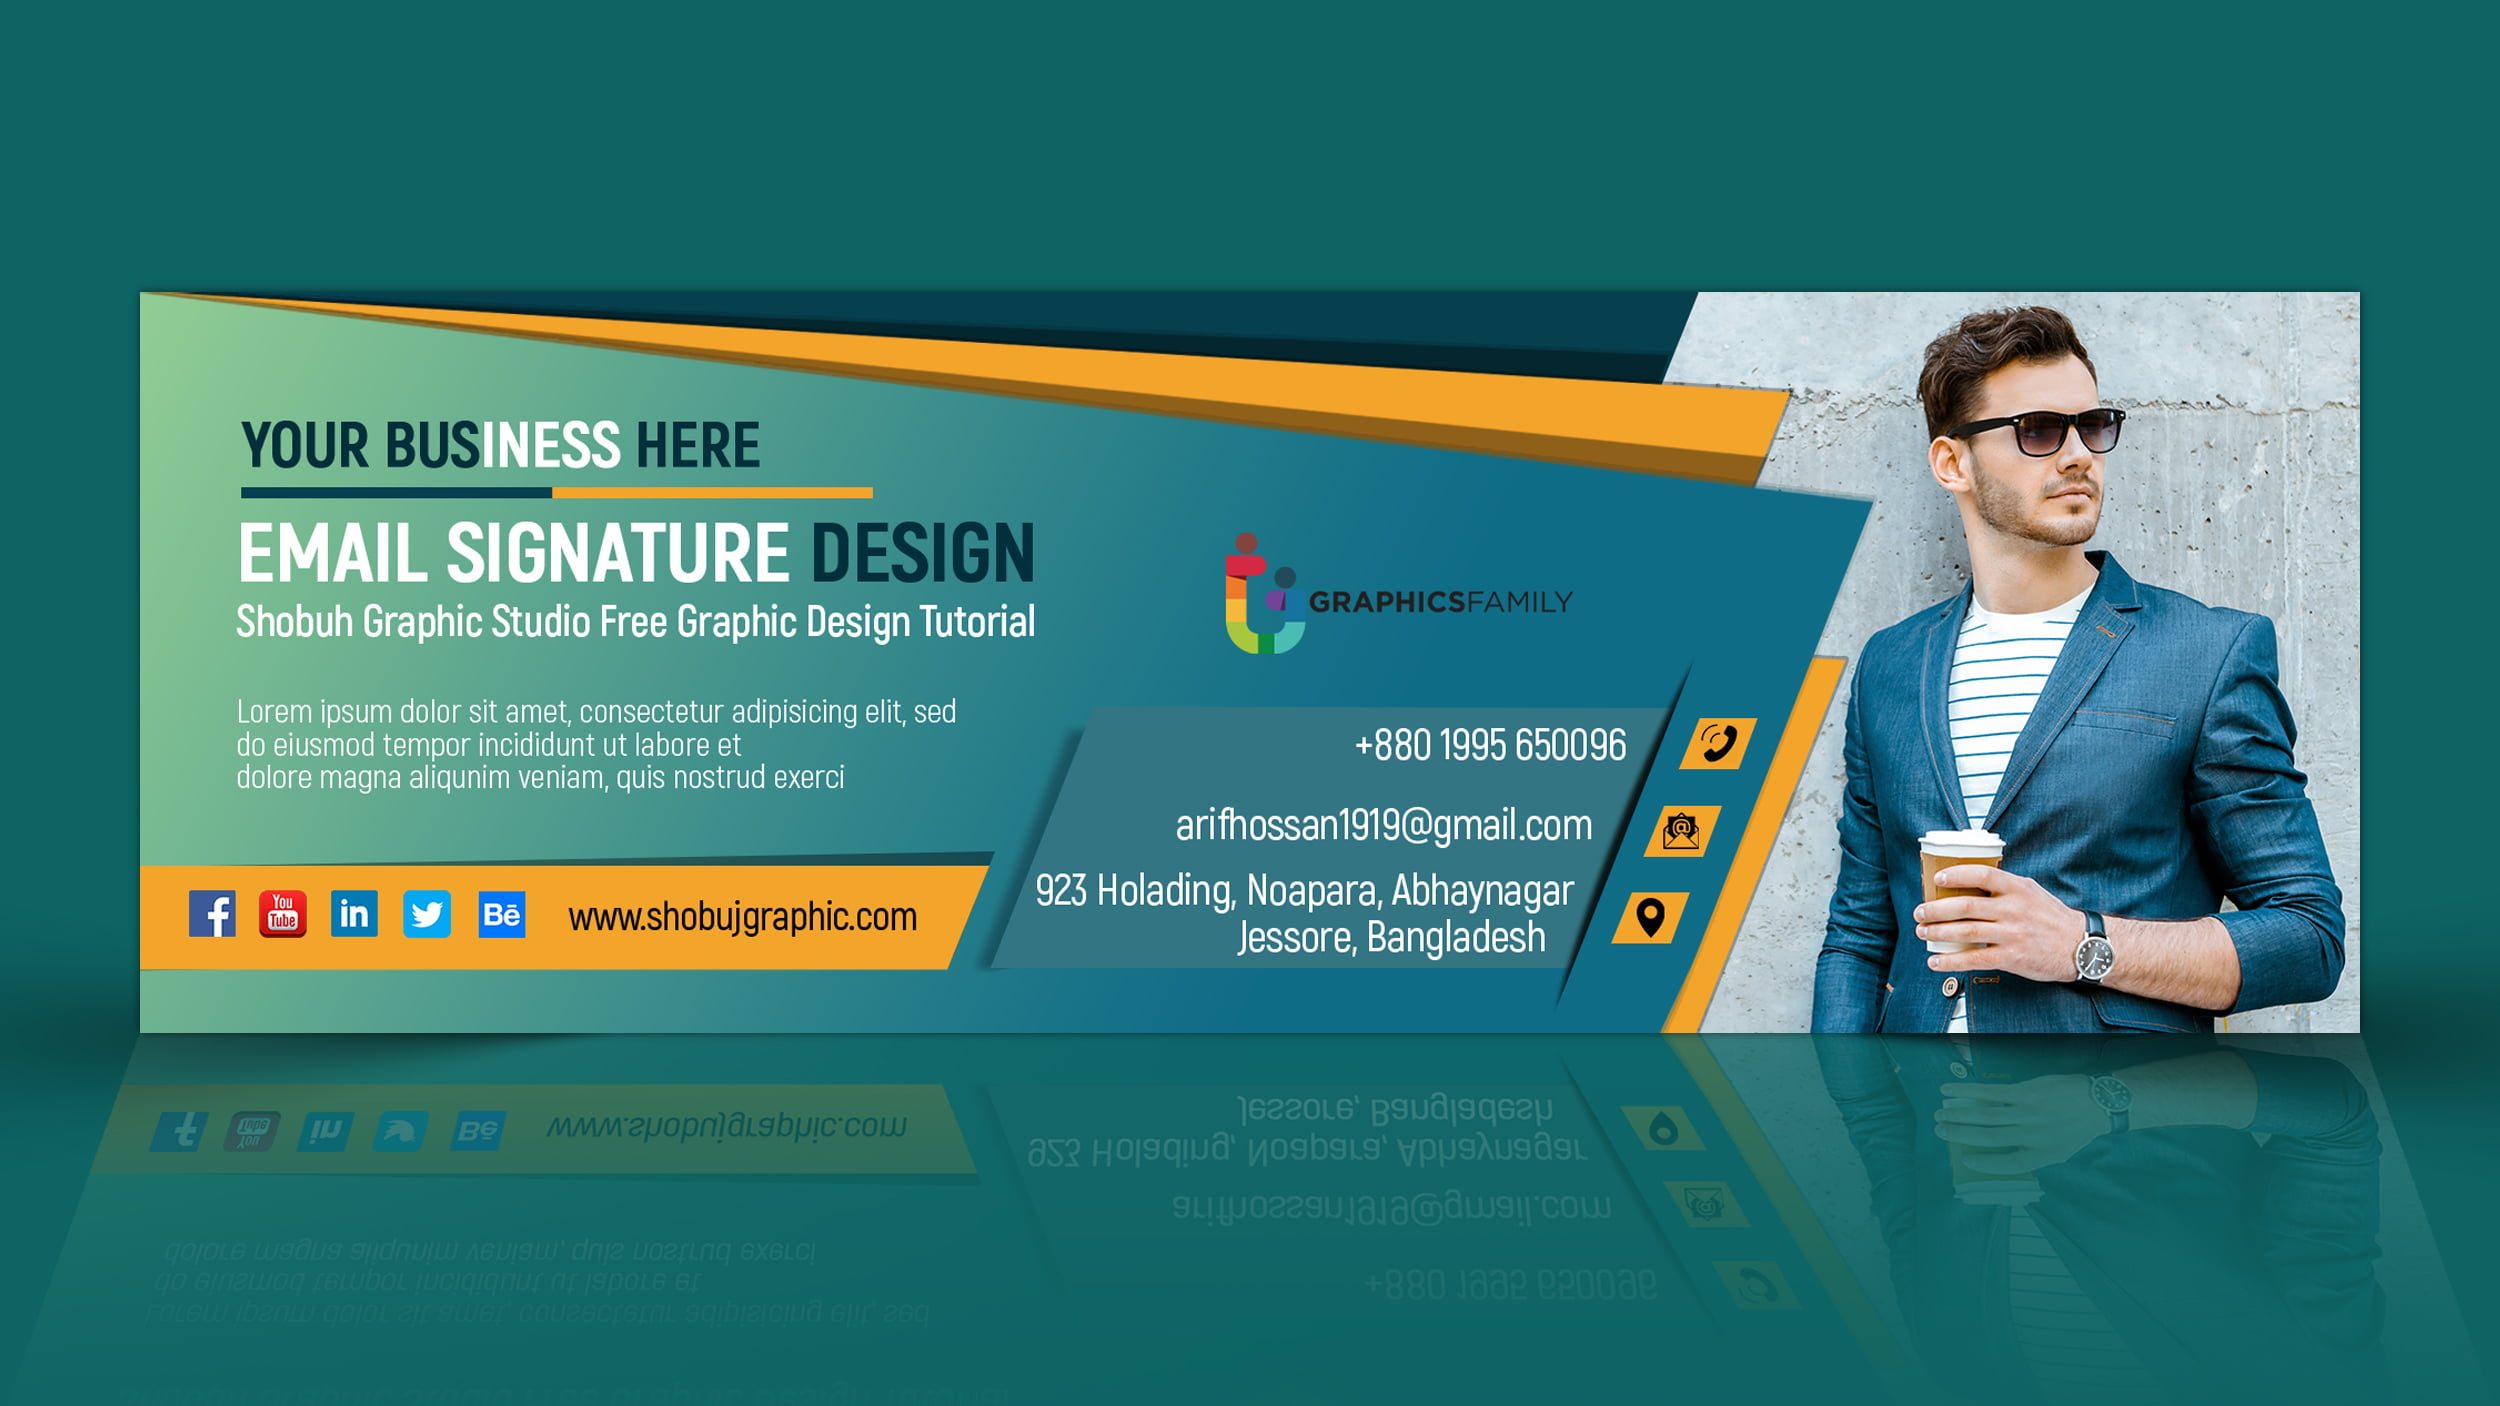 Abstract email signature design jpeg